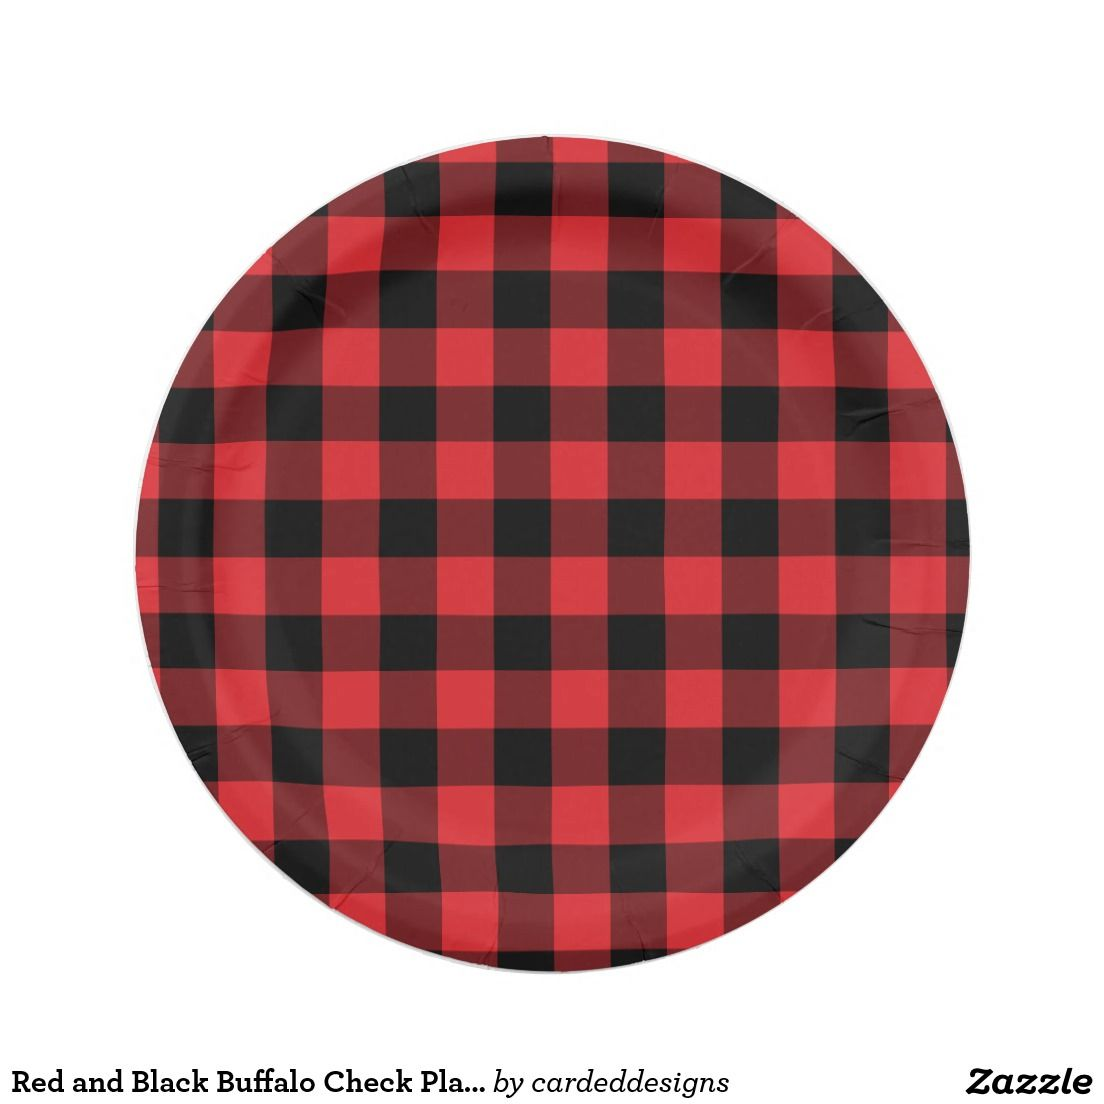 Red and Black Buffalo Check Plaid Pattern 7 Inch Paper Plate  sc 1 st  Pinterest & Red and Black Buffalo Check Plaid Pattern Paper Plate | Lumberjack ...